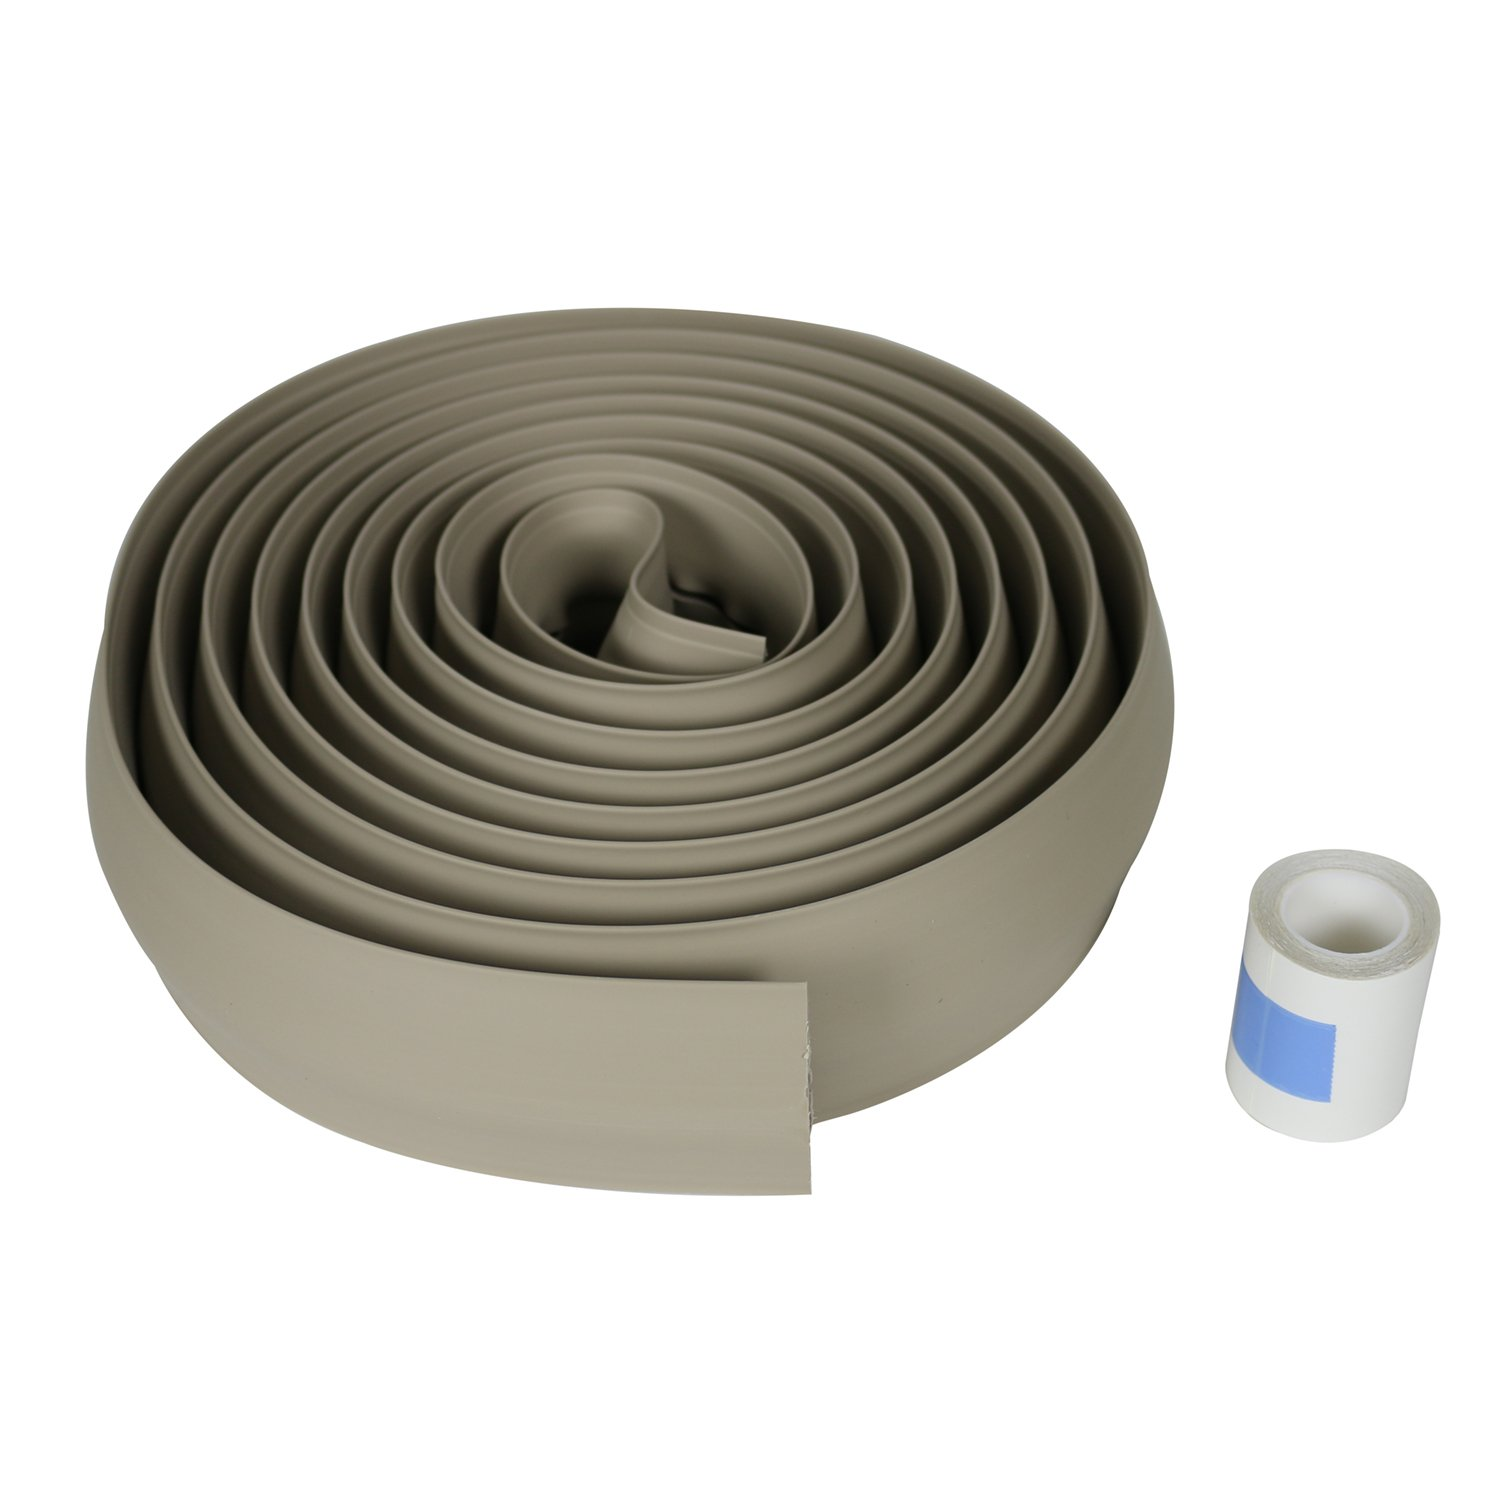 Legrand - Wiremold CDI-15 Corduct Overfloor Cord Protector- Rubber Duct Floor Cord Cover, Ivory, 15 Feet (180 Inches)